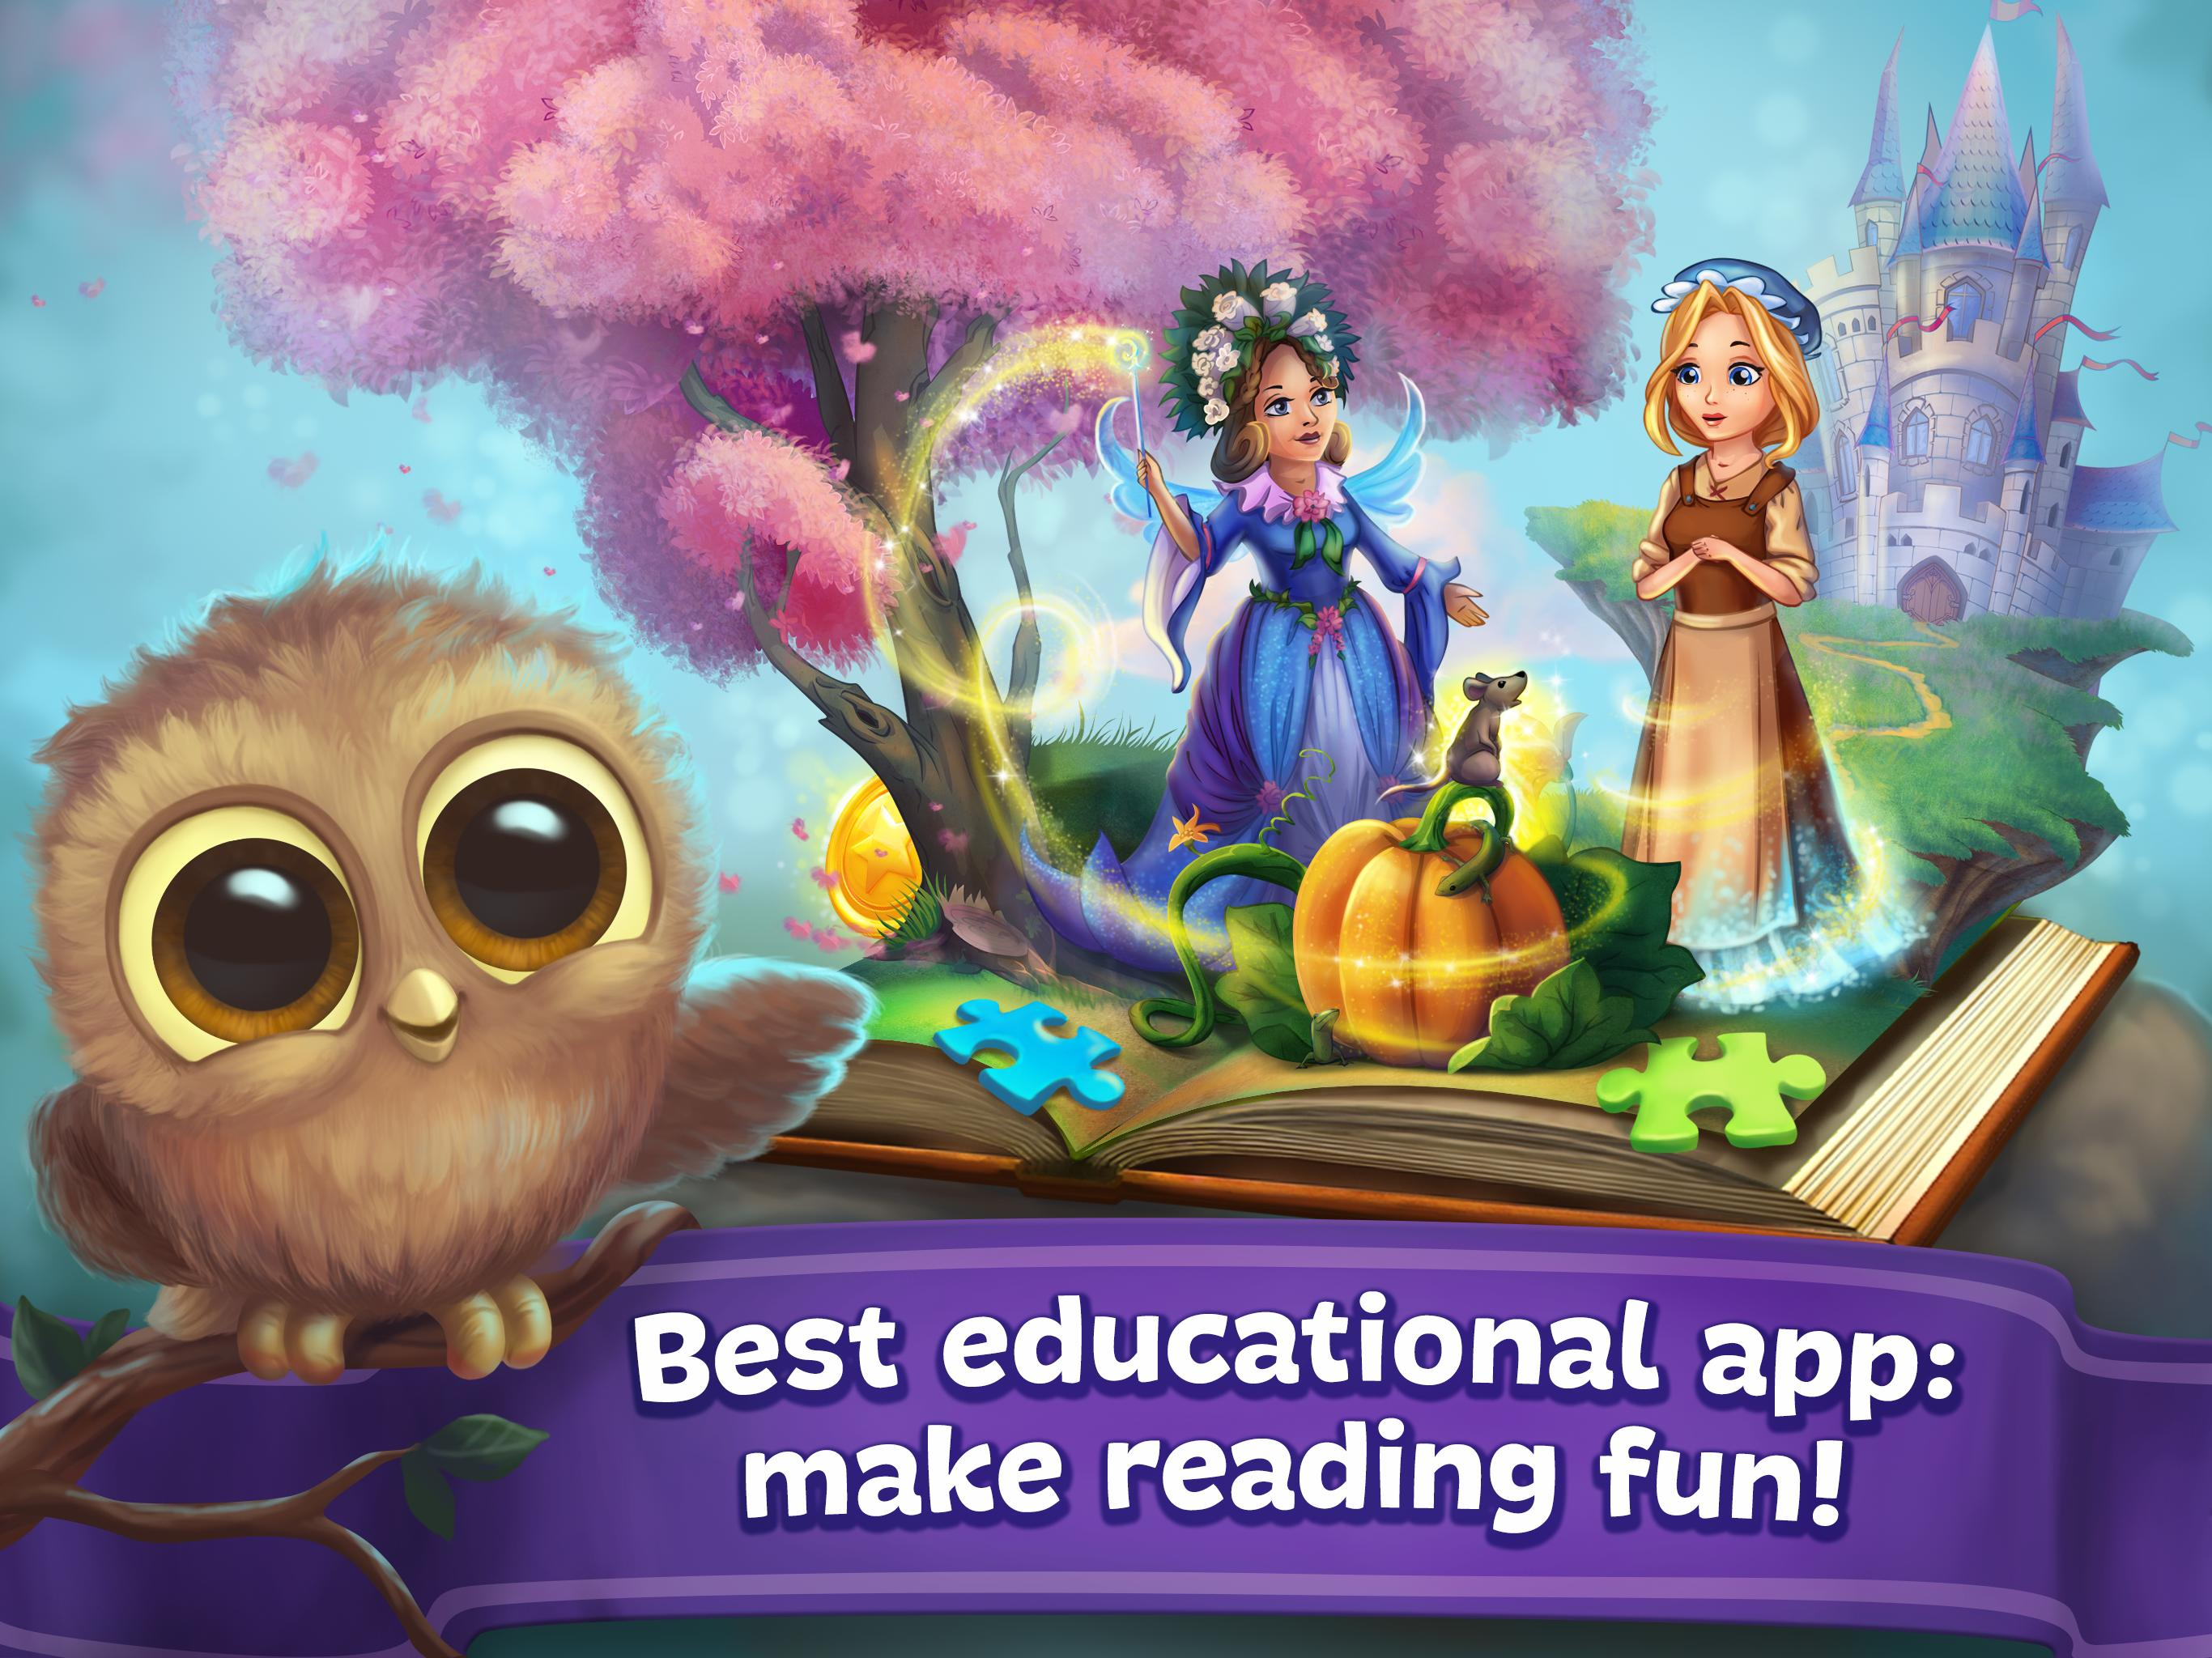 Fairy Tales Children's Books, Stories and Games 2.7.0 Screenshot 11